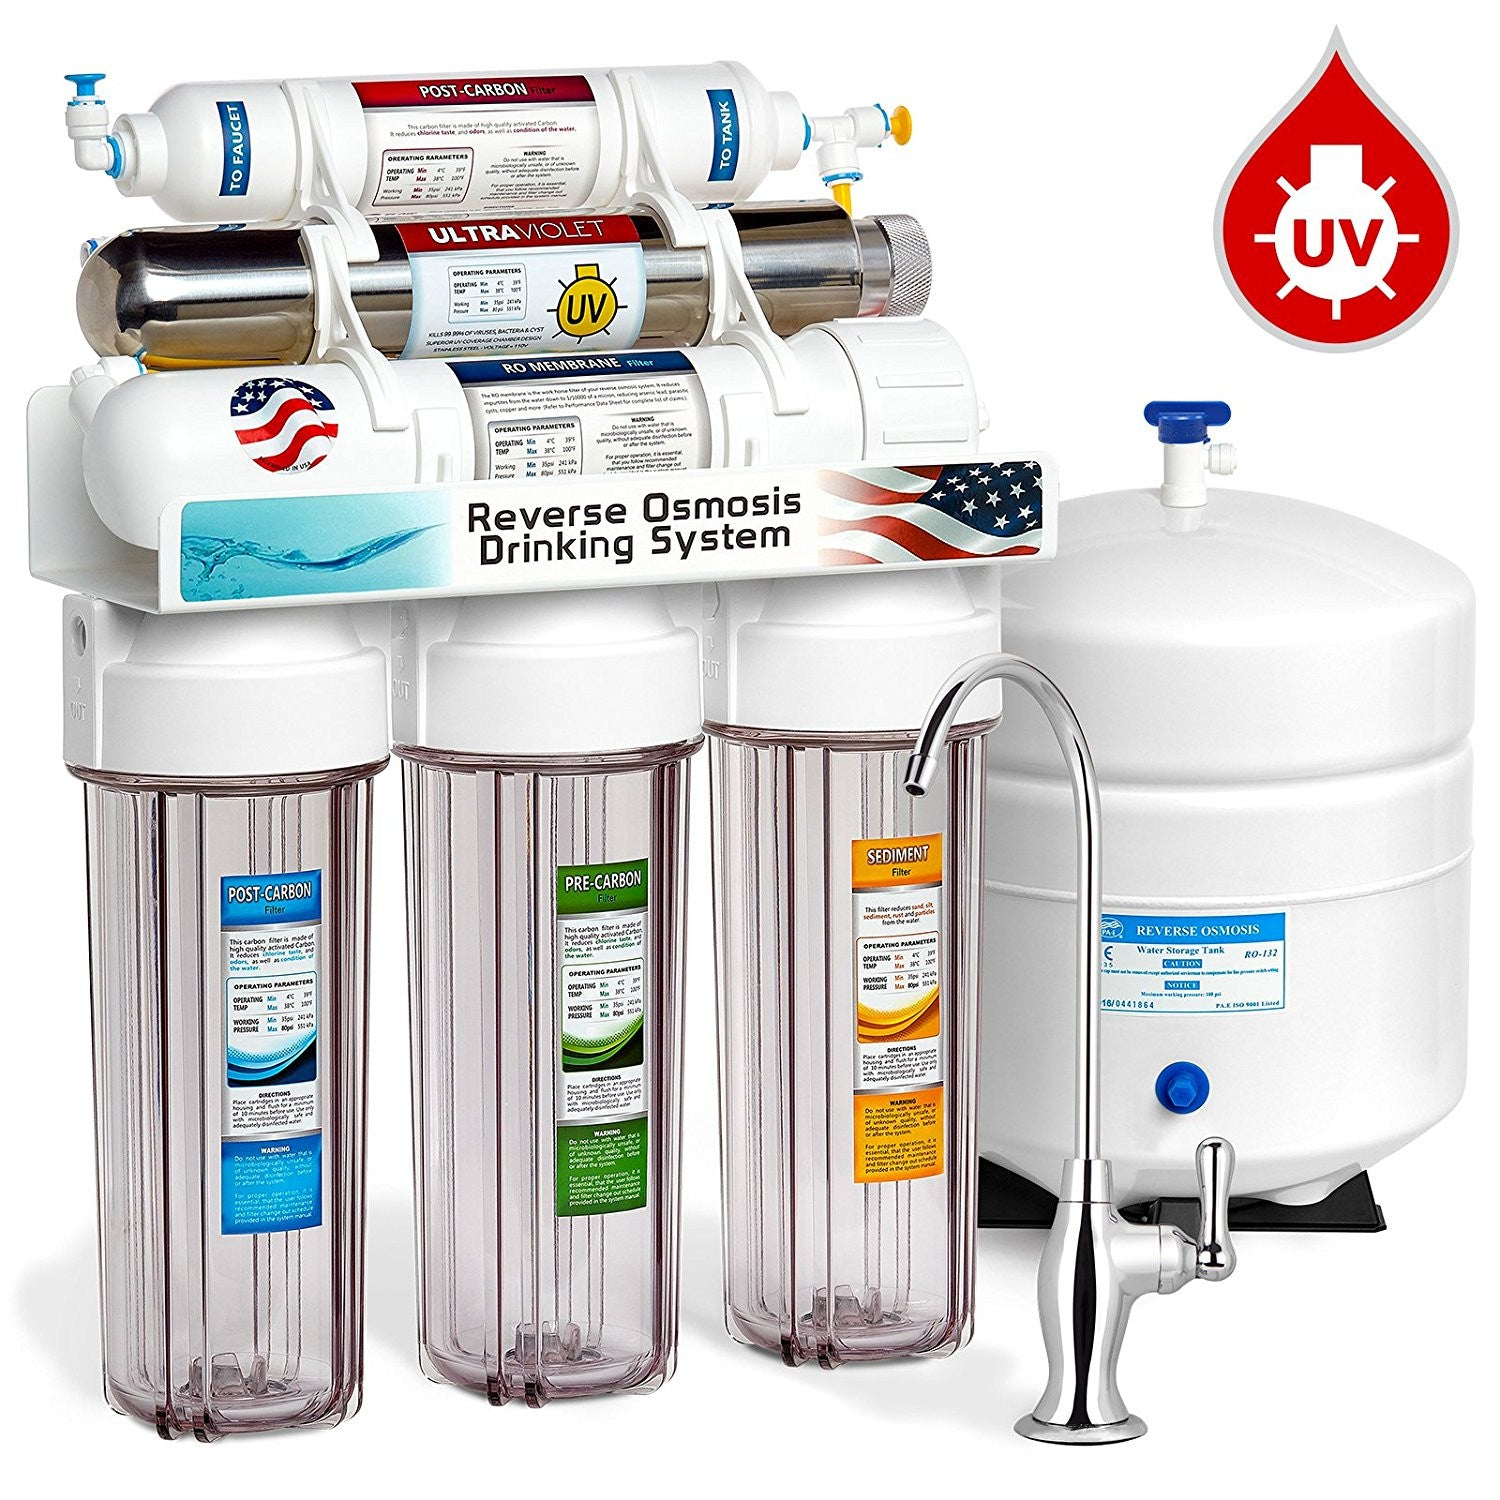 Lovely 6 Stage UV Ultra Violet Sterilizer Reverse Osmosis Home Drinking Water  Filtration System   Clear Housing  100gpd